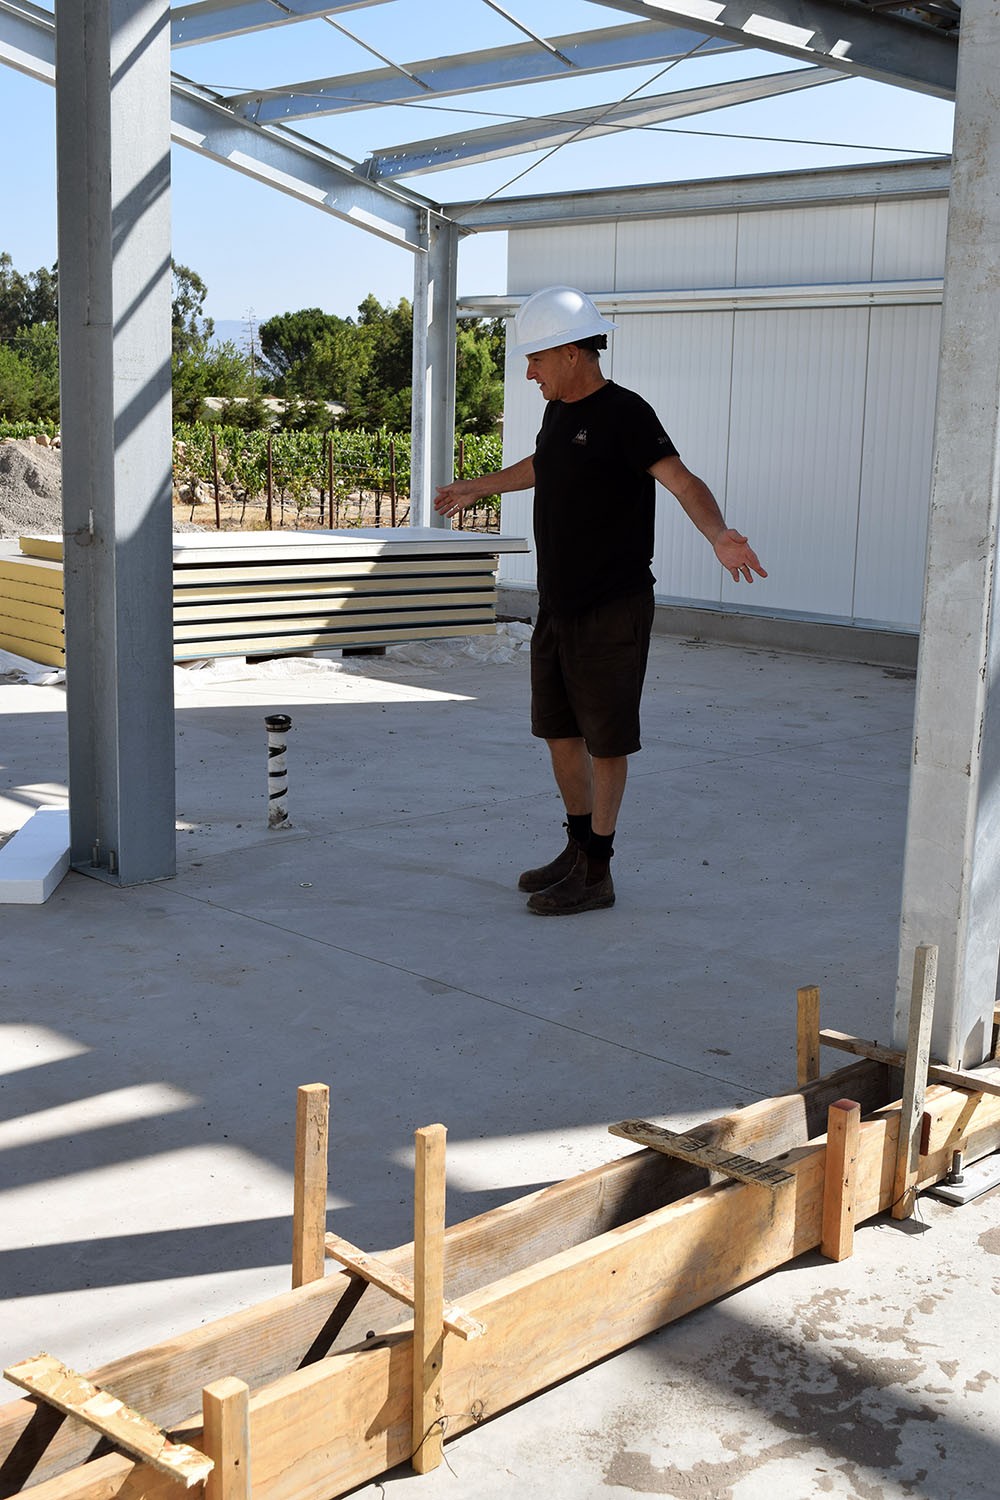 The new facility will offer Michael and his winemaking team a great space to produce wine